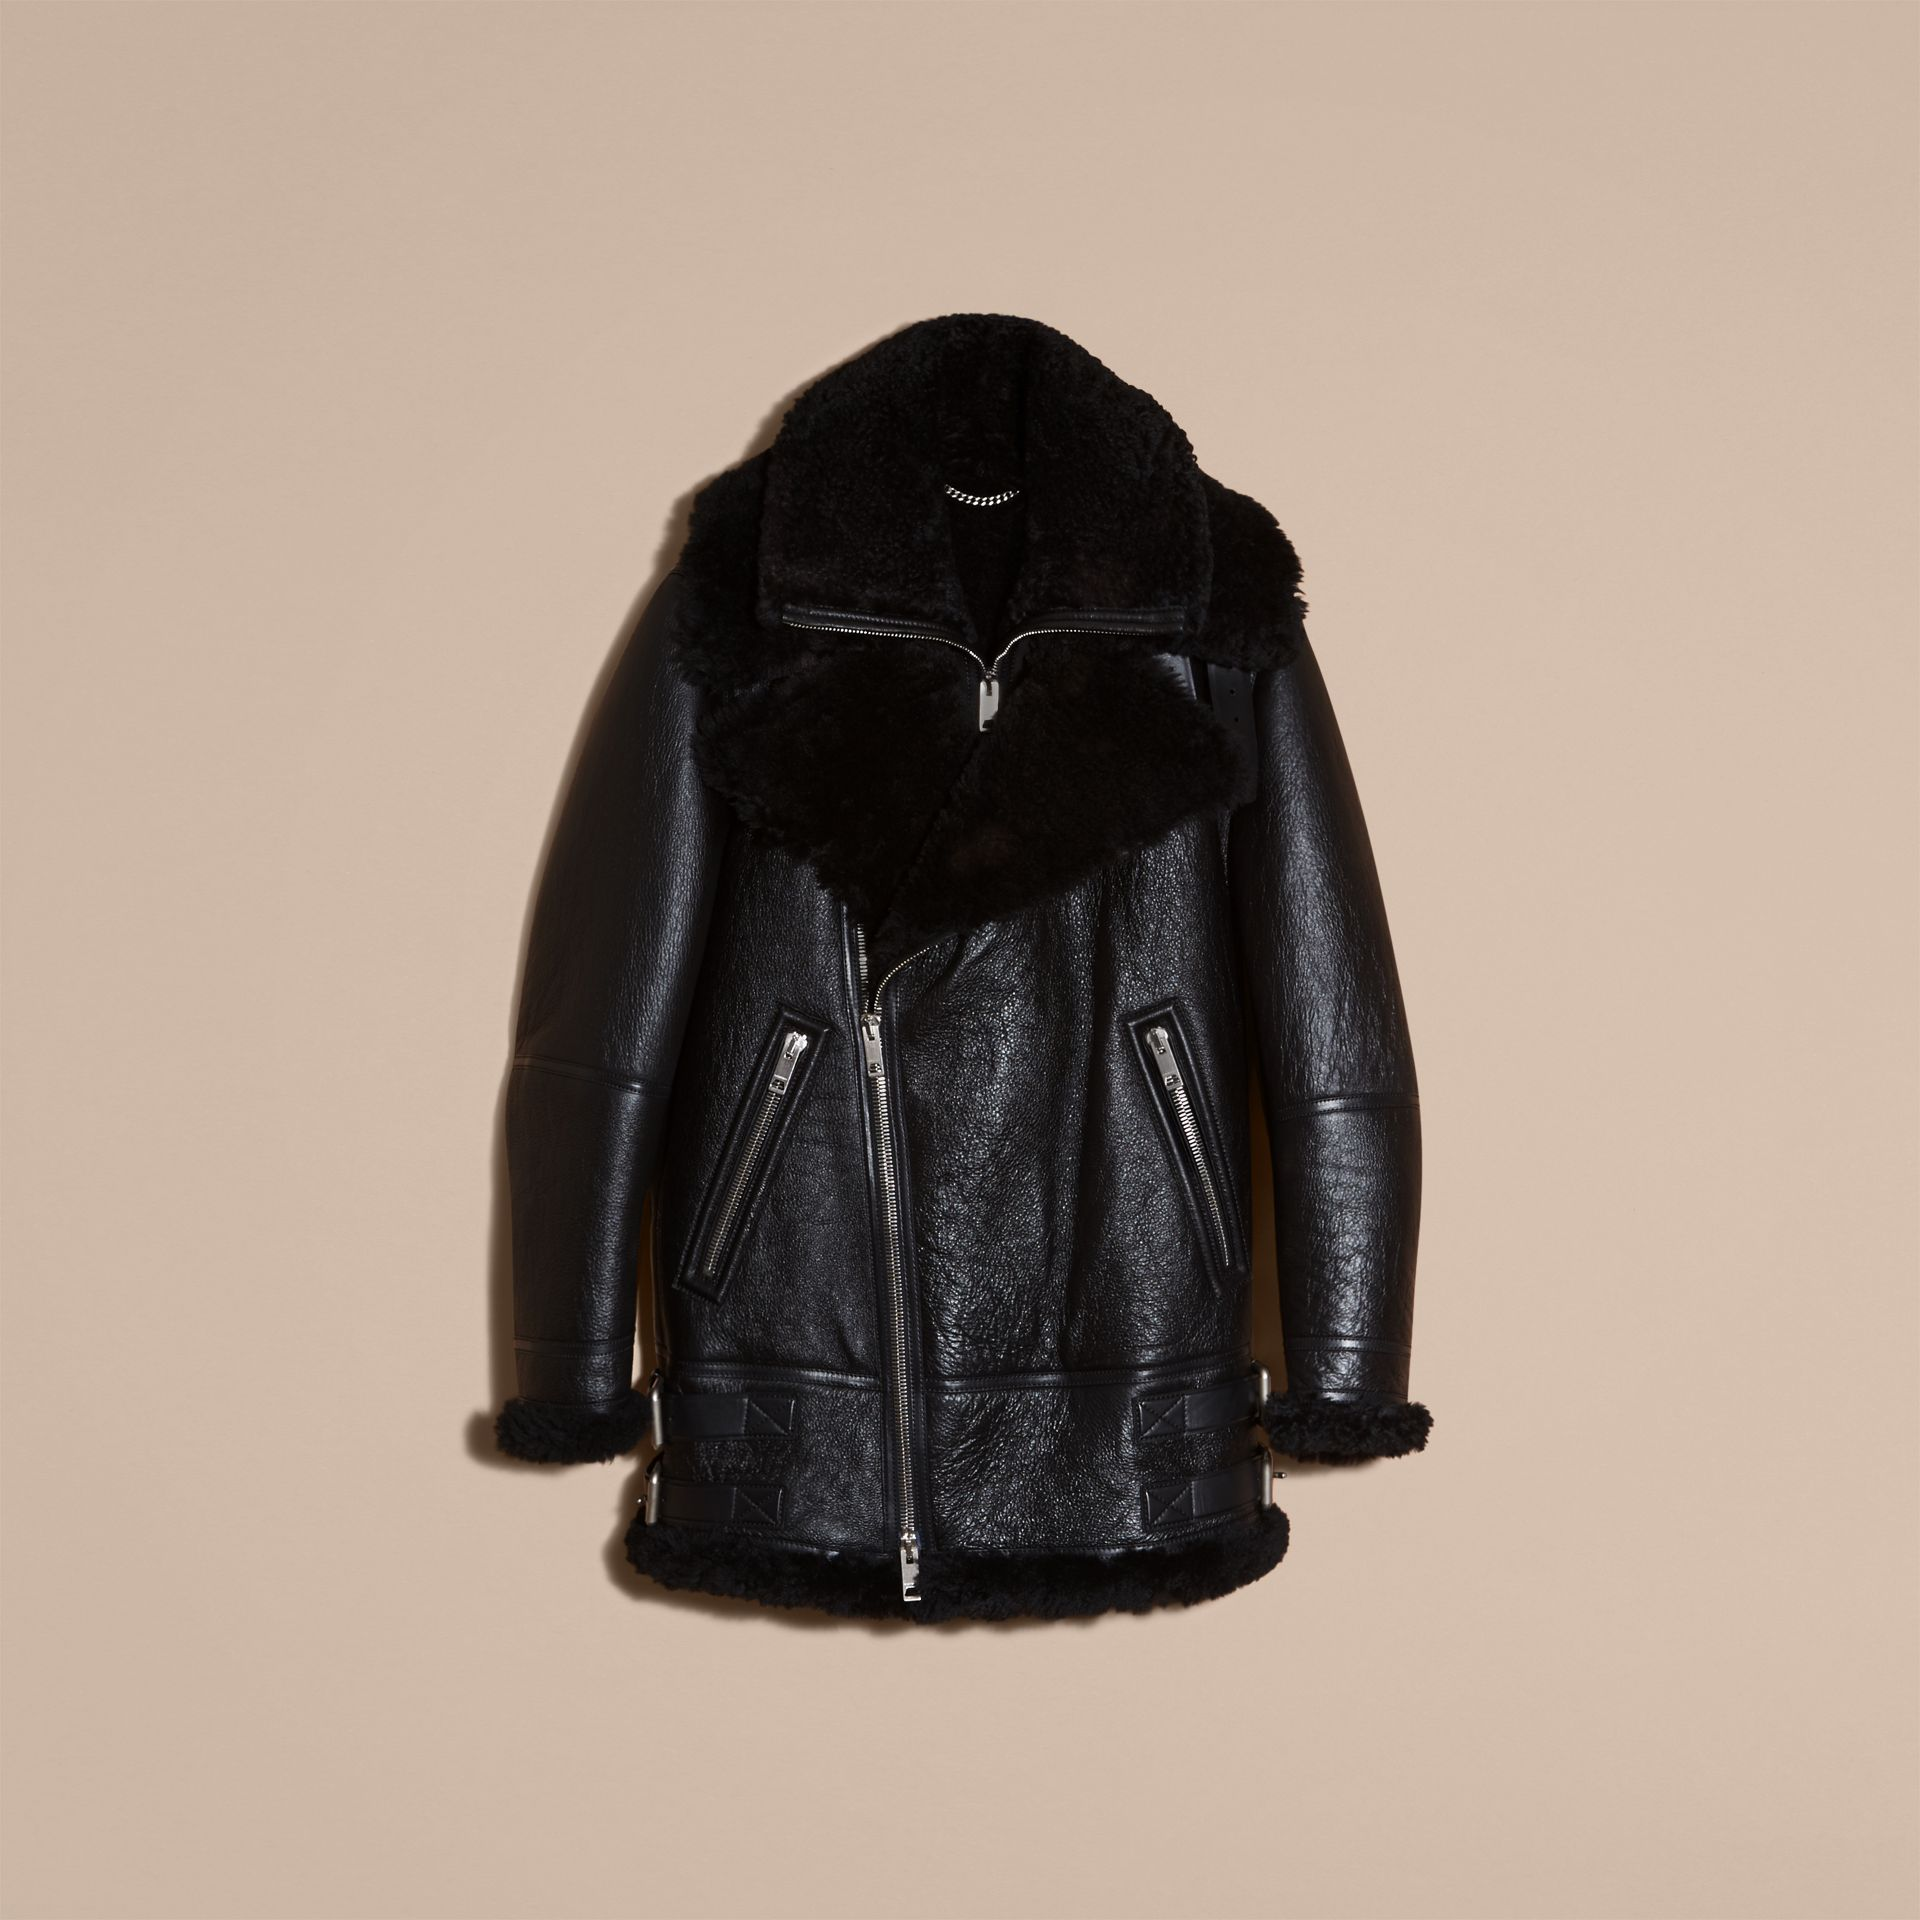 Black Long-line Shearling Aviator Jacket with Zip-out Bib - gallery image 4